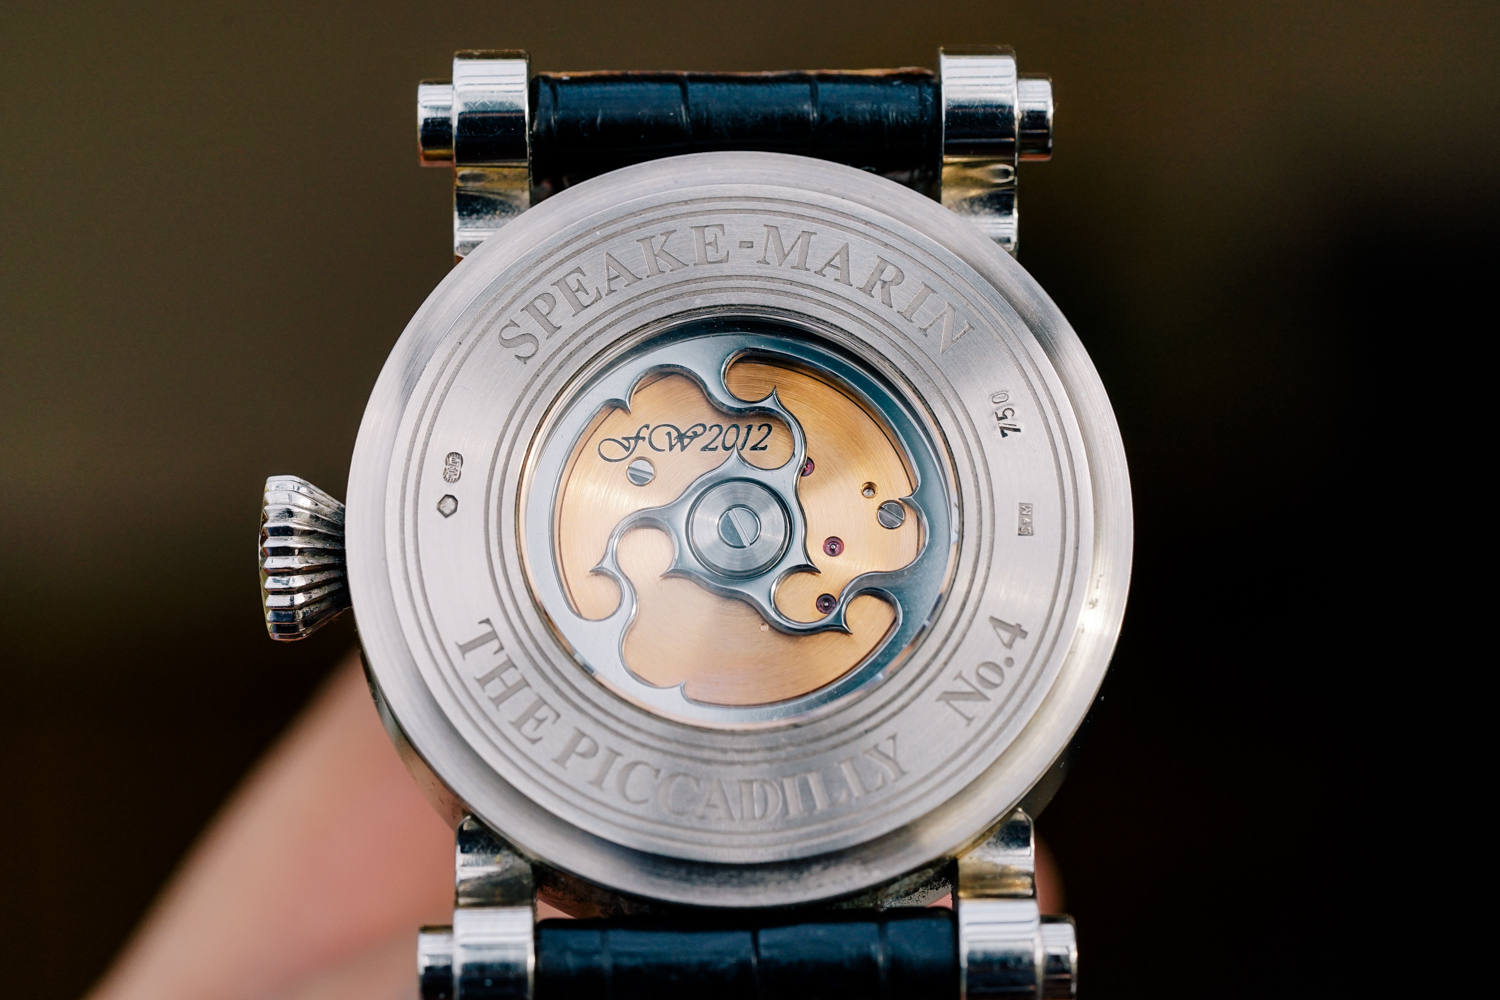 SpeakeMarin-Piccadilly-Movement